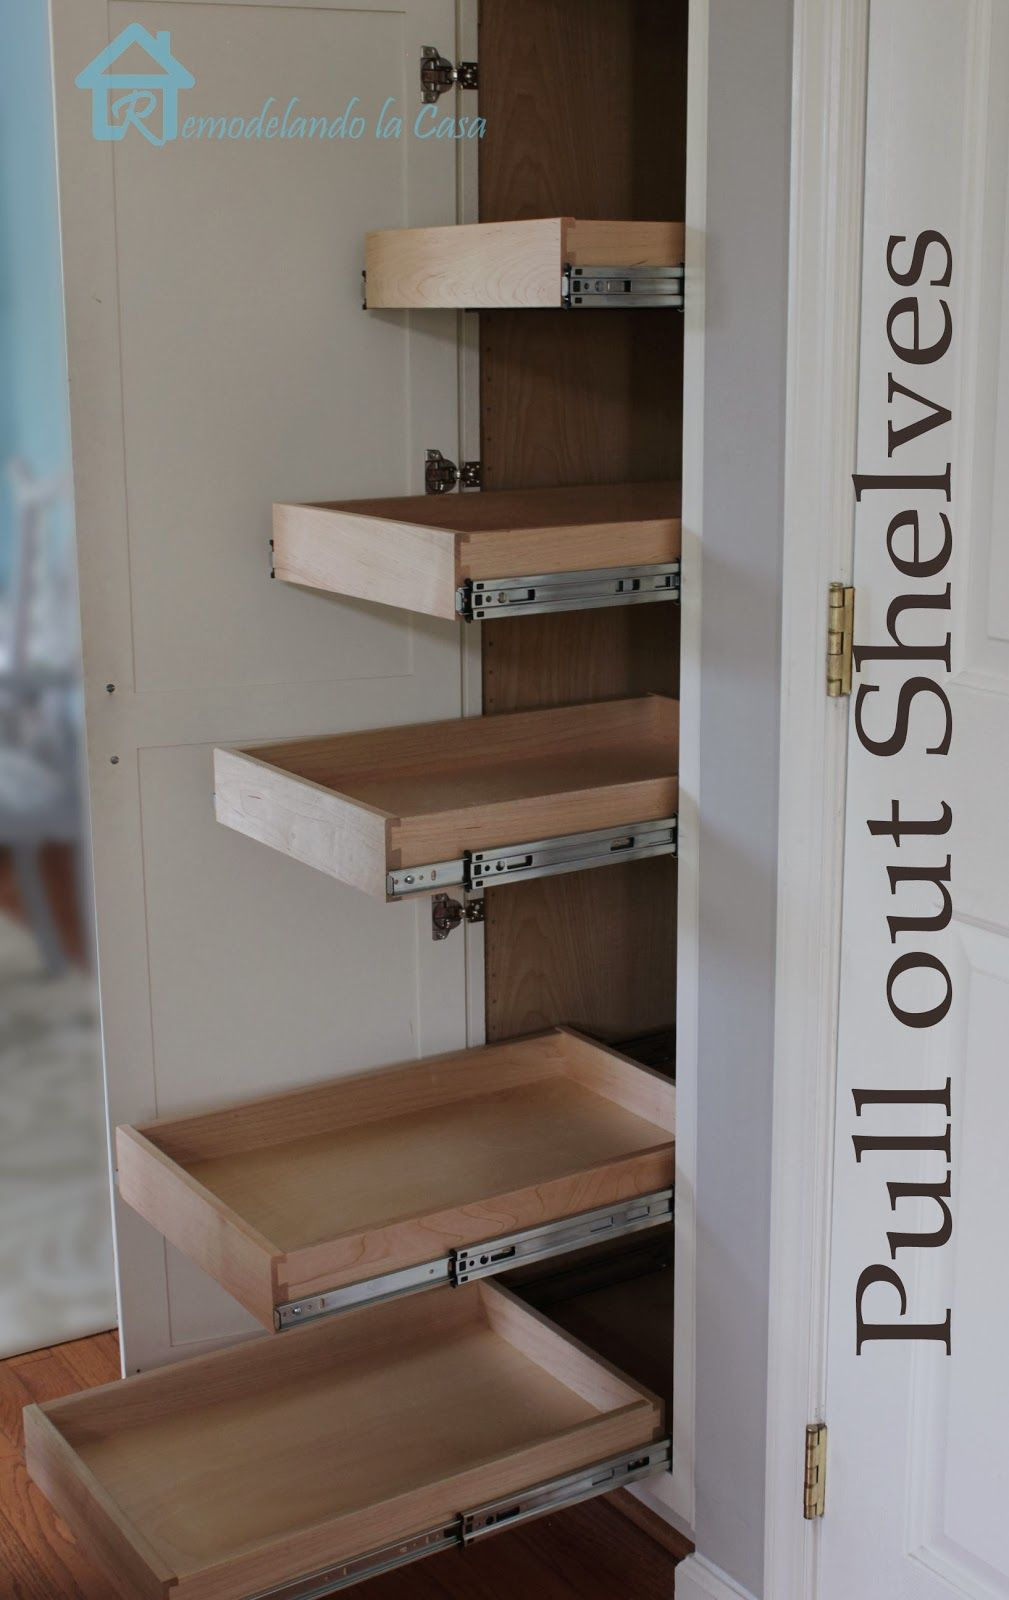 Marvelous Kitchen Organization   Pull Out Shelves In Pantry